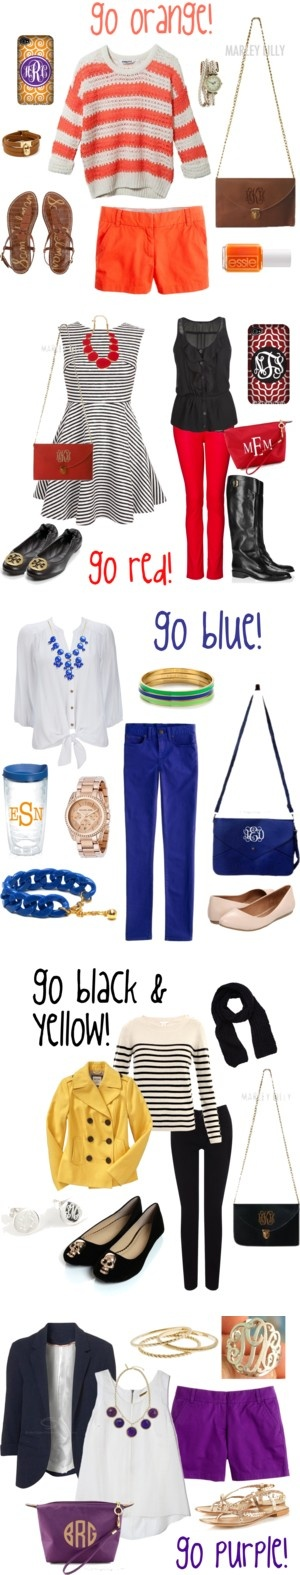 """""""Marley Lilly Game Day Fashions"""" by marleylilly on Polyvore"""